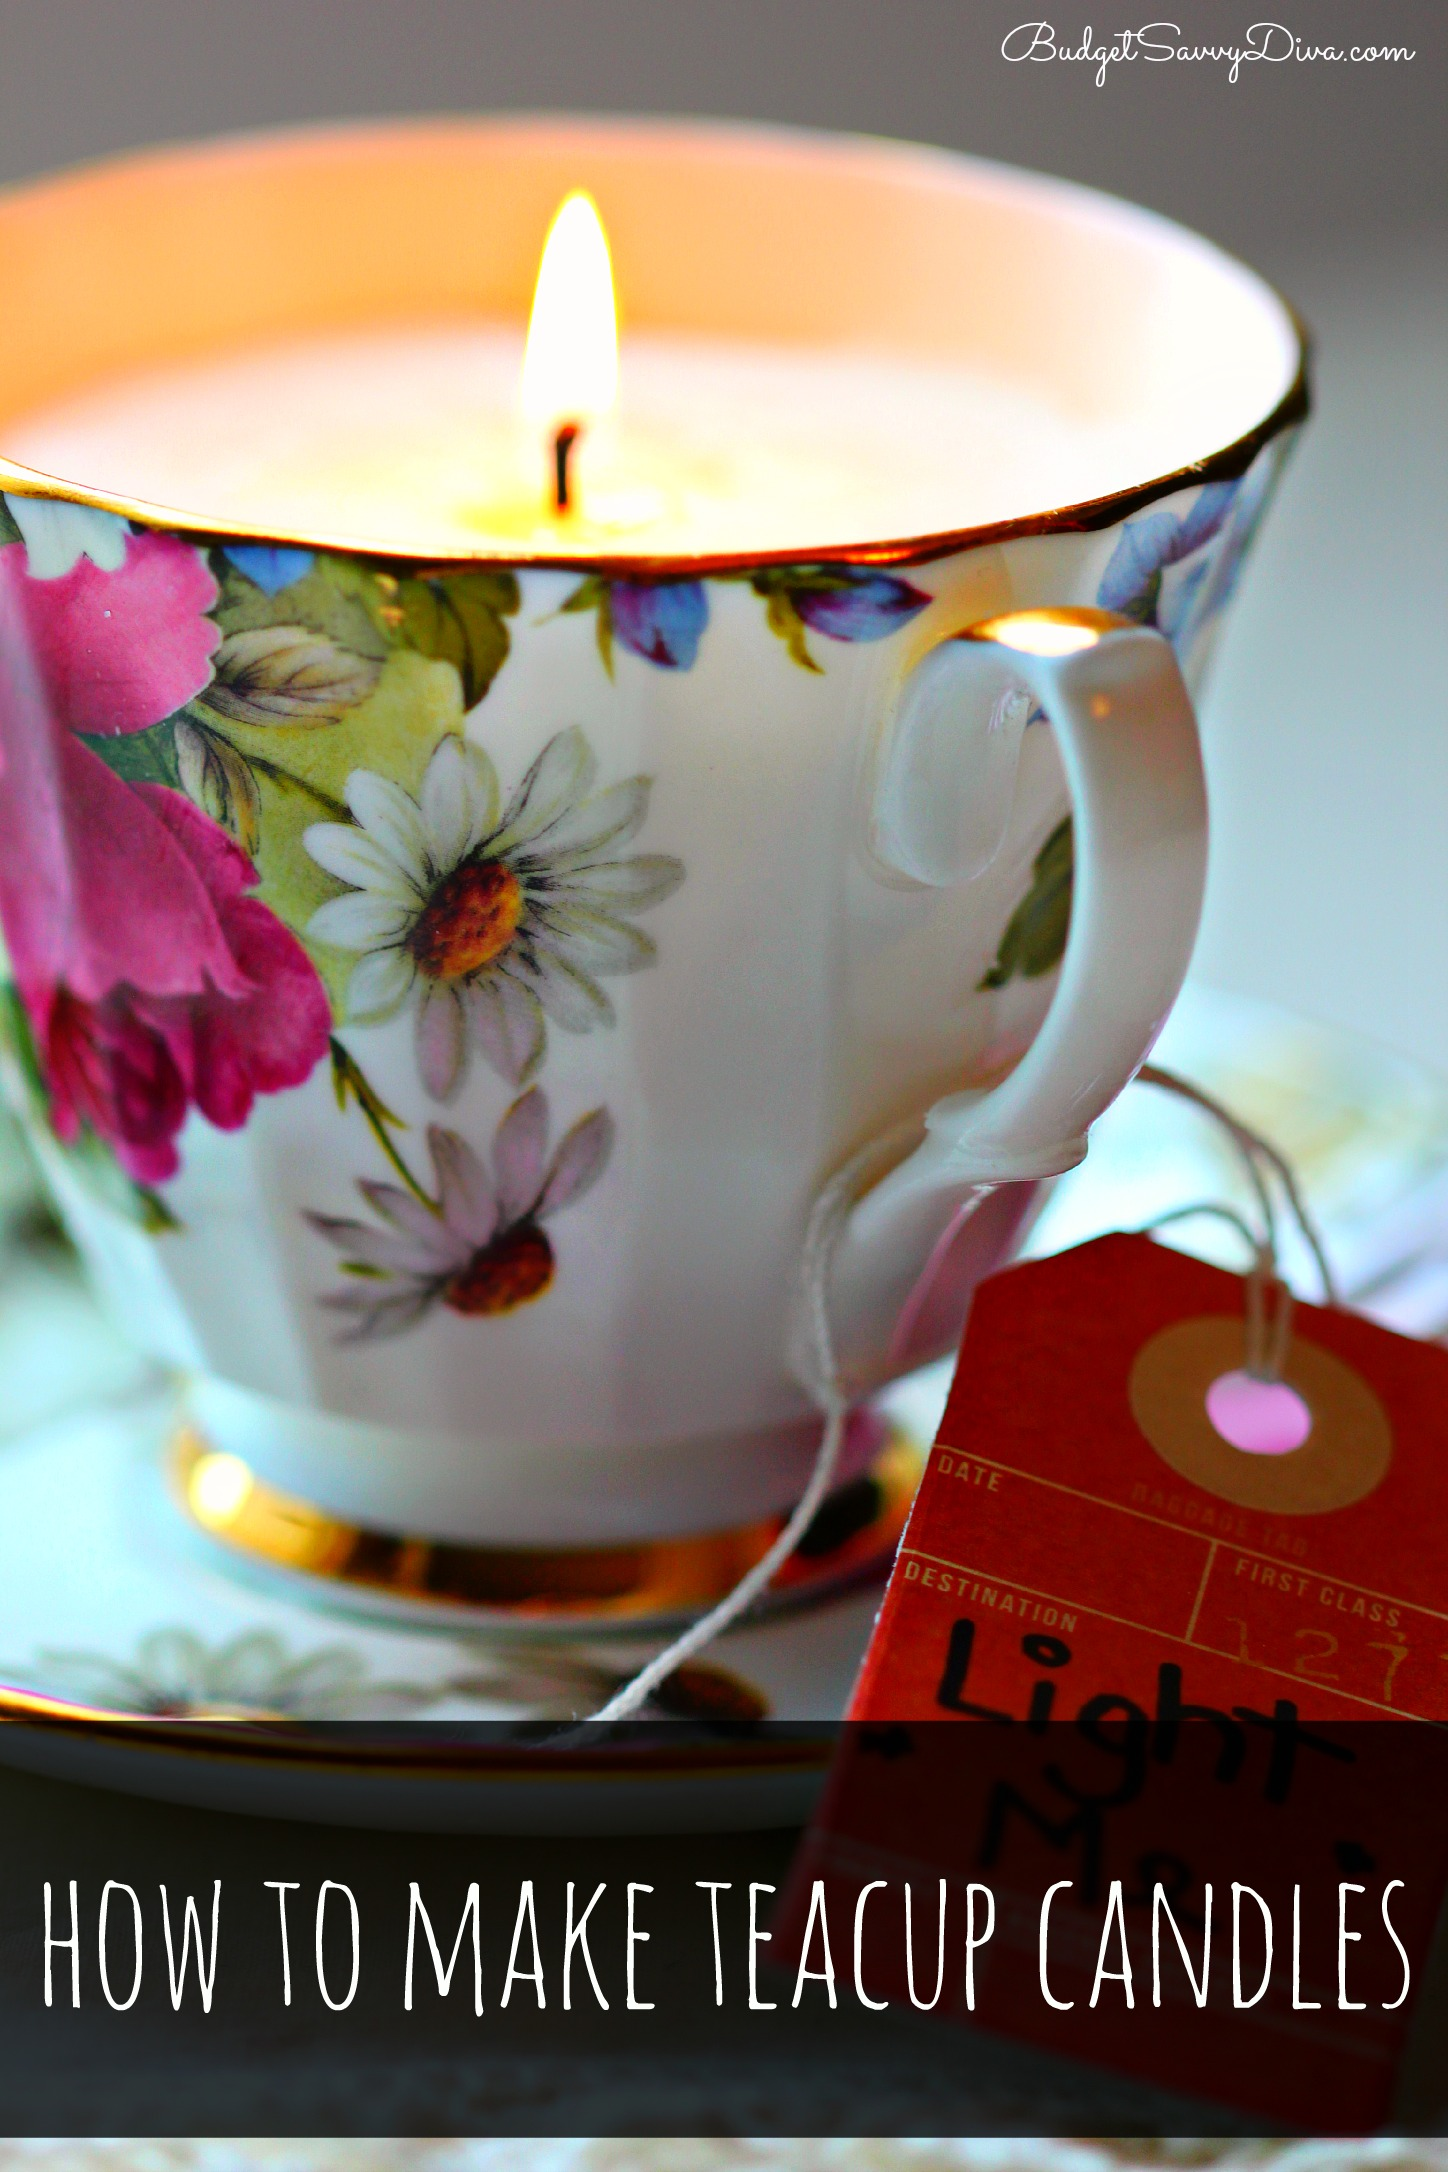 How To Make Teacup Candles Budget Savvy Diva